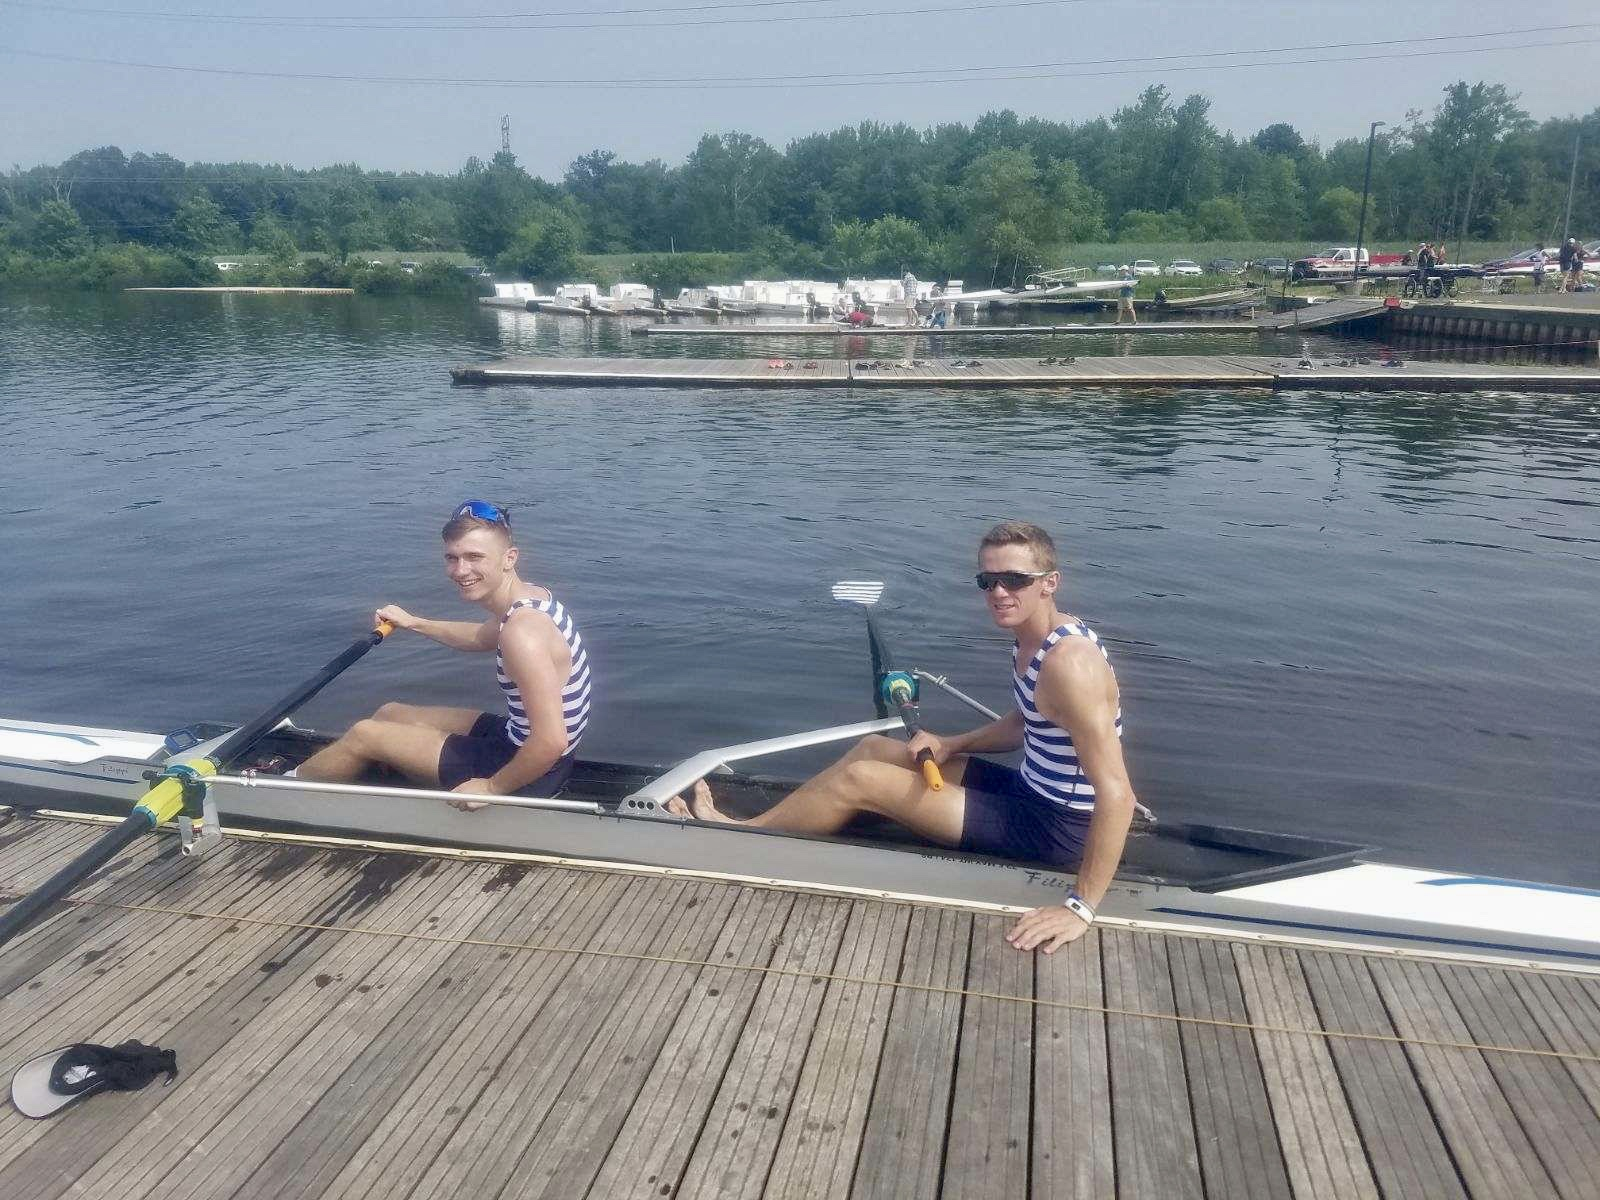 The U23 Lightweight Men's pair: Collin Hay and Matthew Marchiony won their final with a time of 6:47.26.